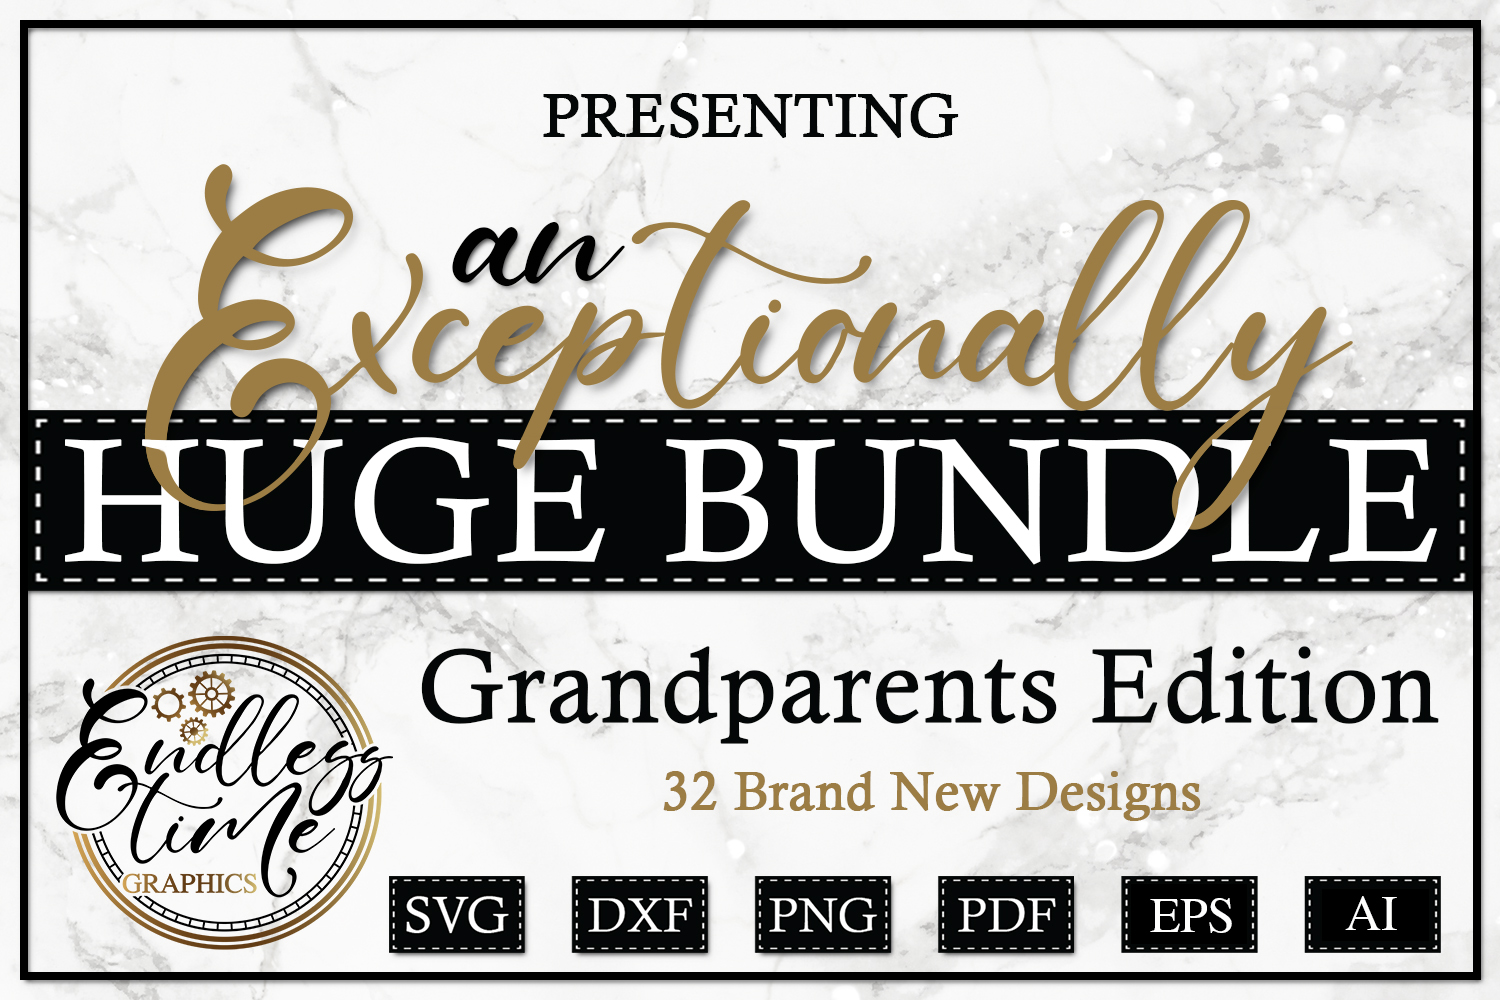 An Exceptionally Huge Bundle - Grandparents Edition example image 1